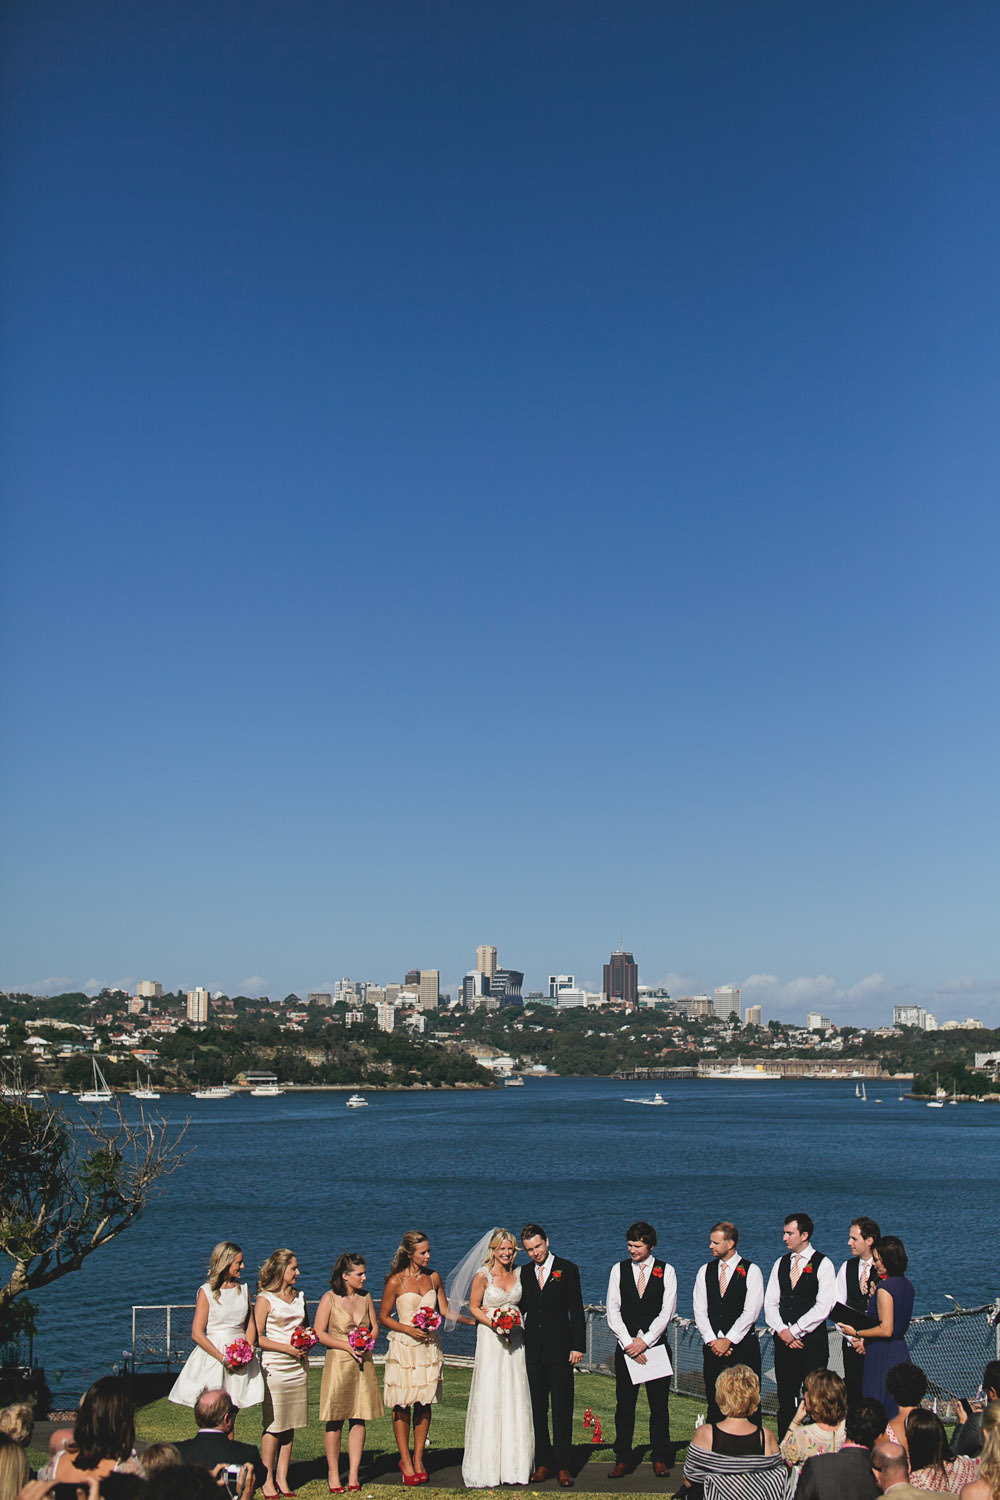 justin_aaron_sydney_cockatoo_island_wedding_photographer-52.jpg